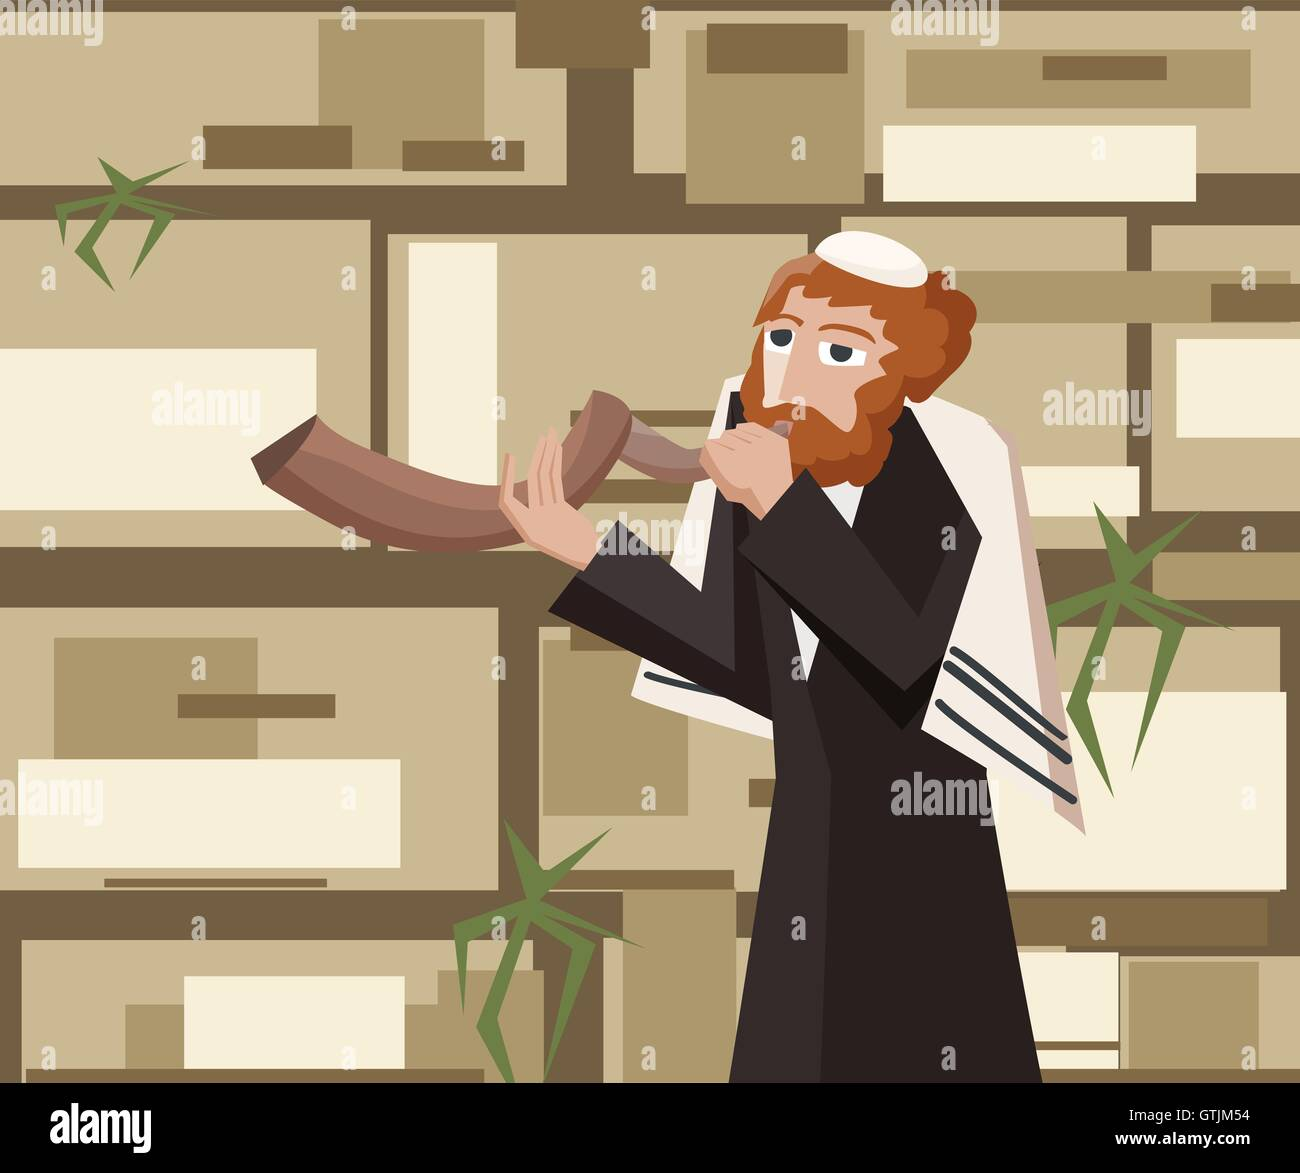 jew blowing the shofar at kotel - cartoon vector illustration - Stock Vector